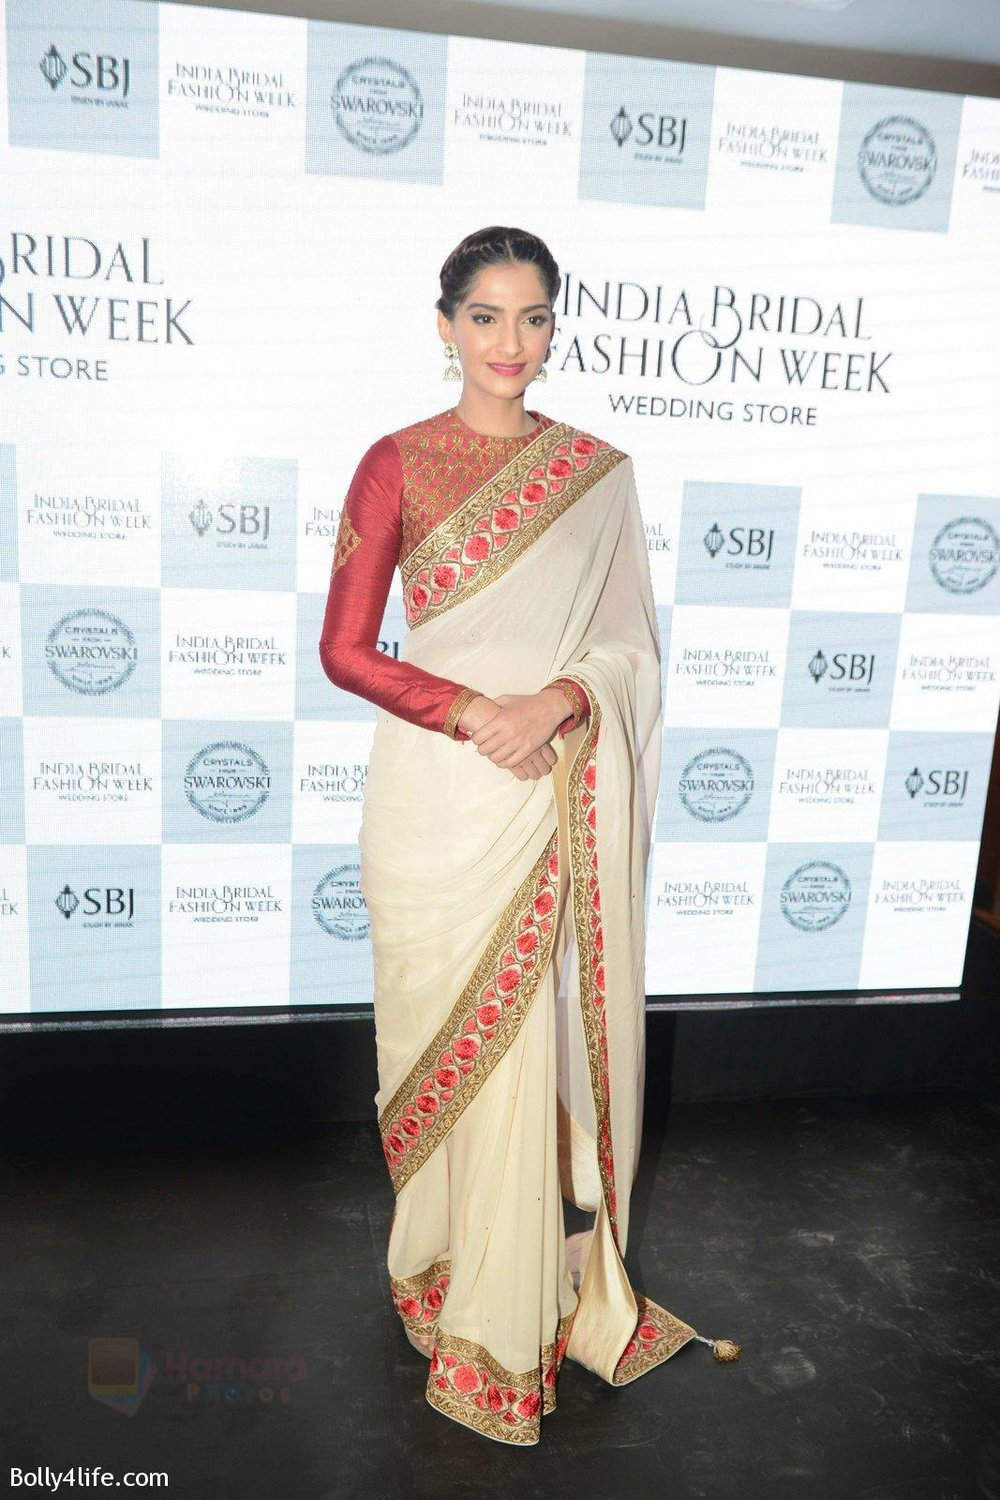 Sonam-Kapoor-during-the-launch-of-the-first-Indian-Bridal-Fashion-Week-Wedding-Store-in-New-Delhi-on-9th-Sept-2016-46.jpg